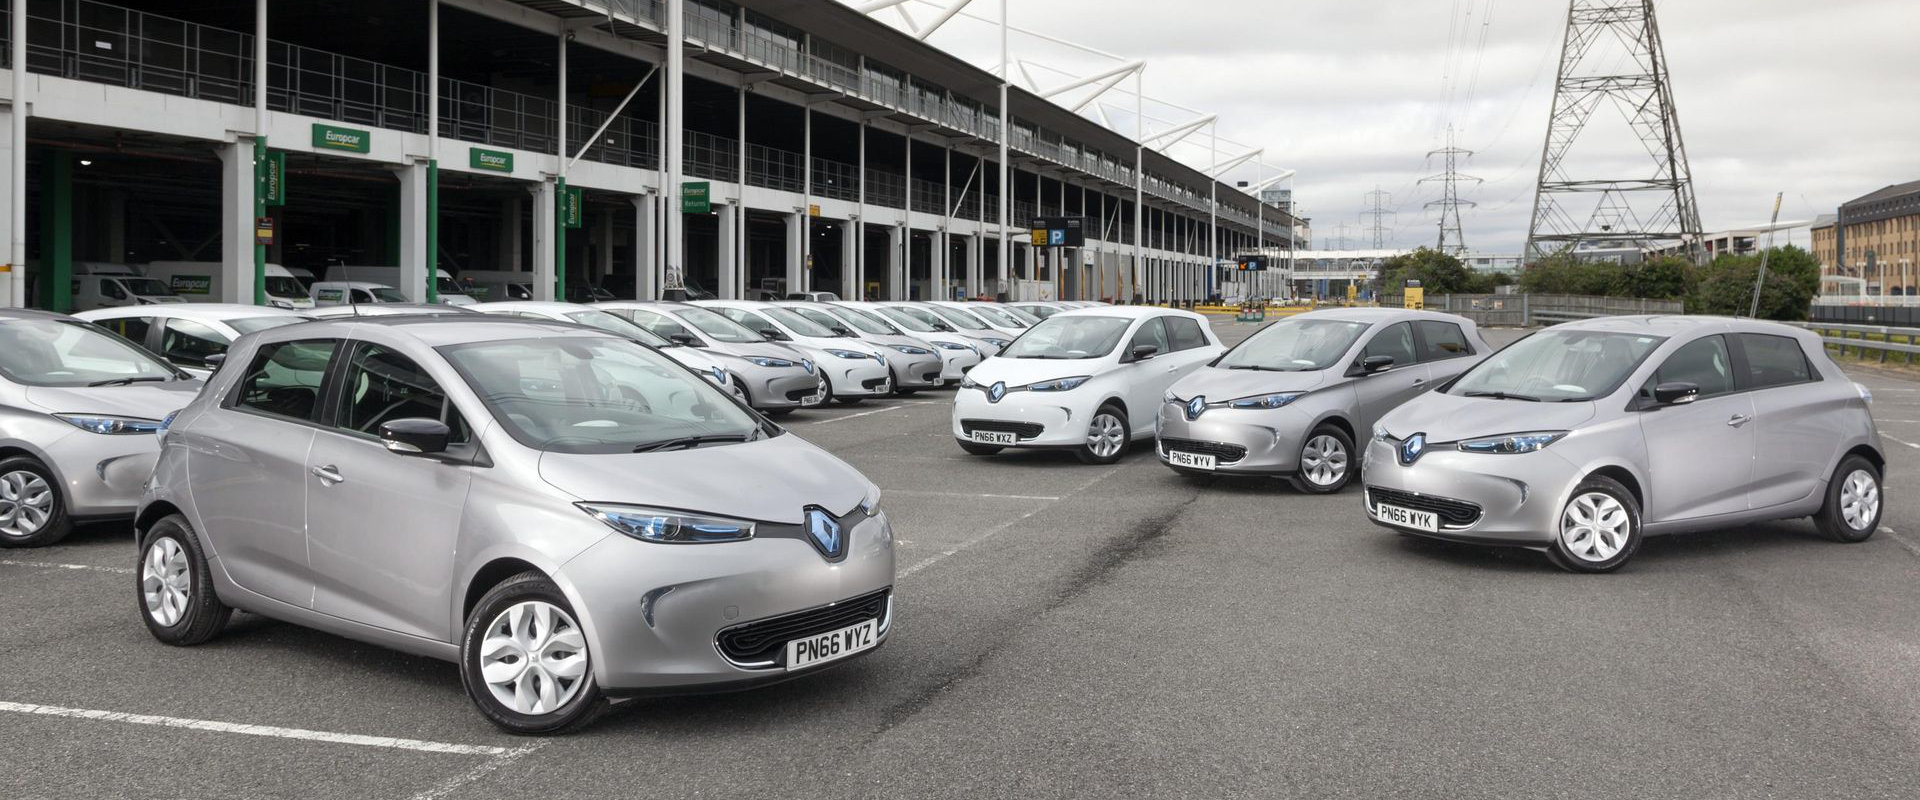 We Continue To Expand Our Fleet Of Evs E Car Club